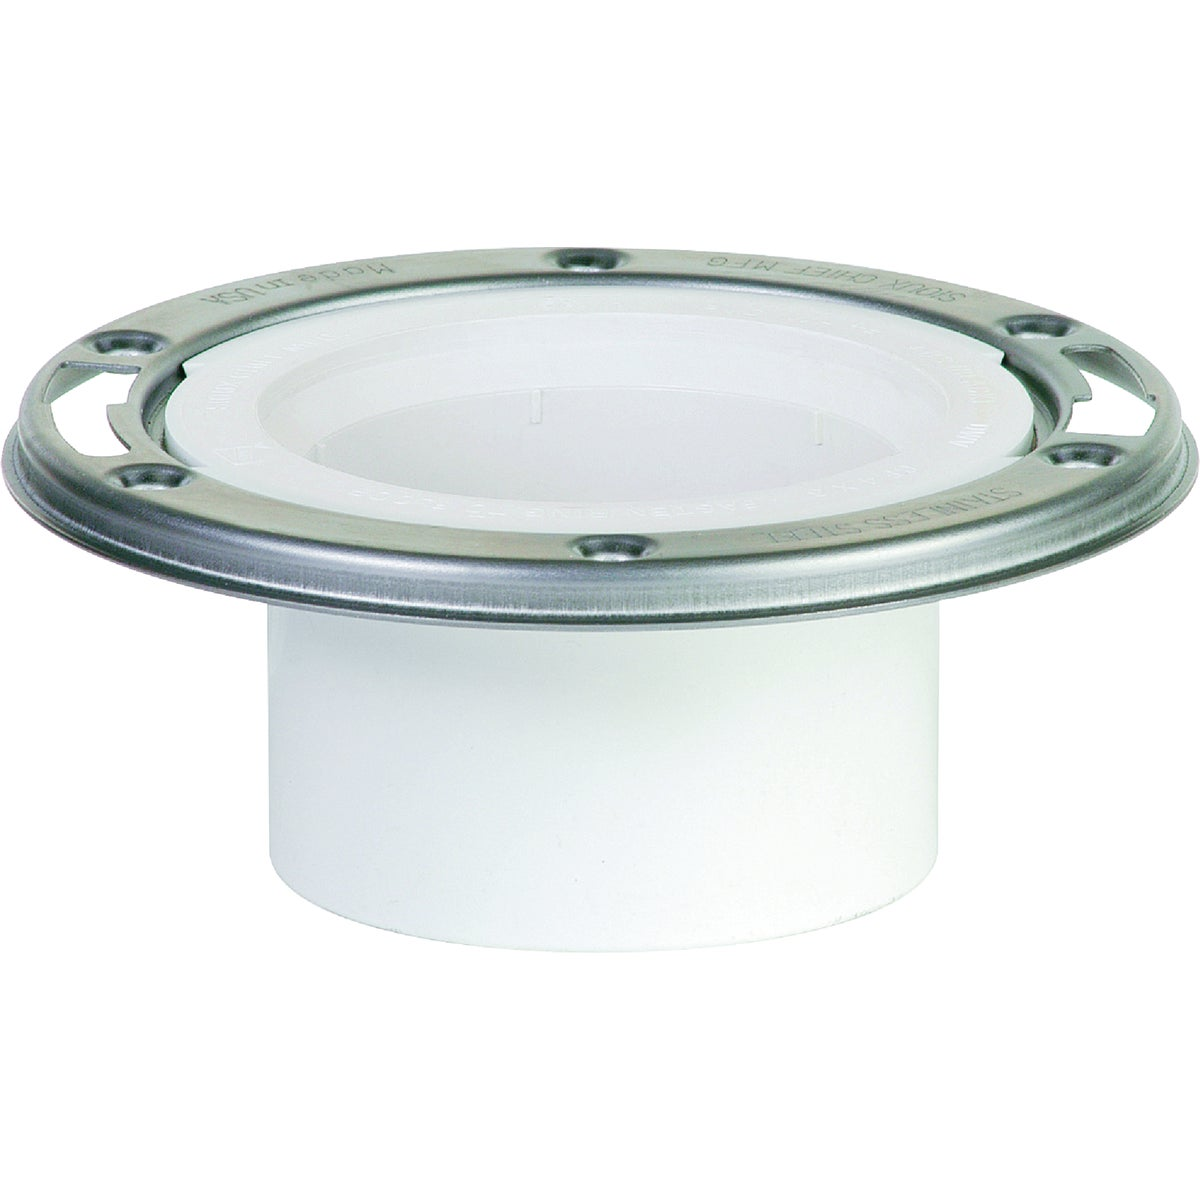 "4""HUB SS PVC CLST FLANGE - 886-4PM by Sioux Chief Mfg"